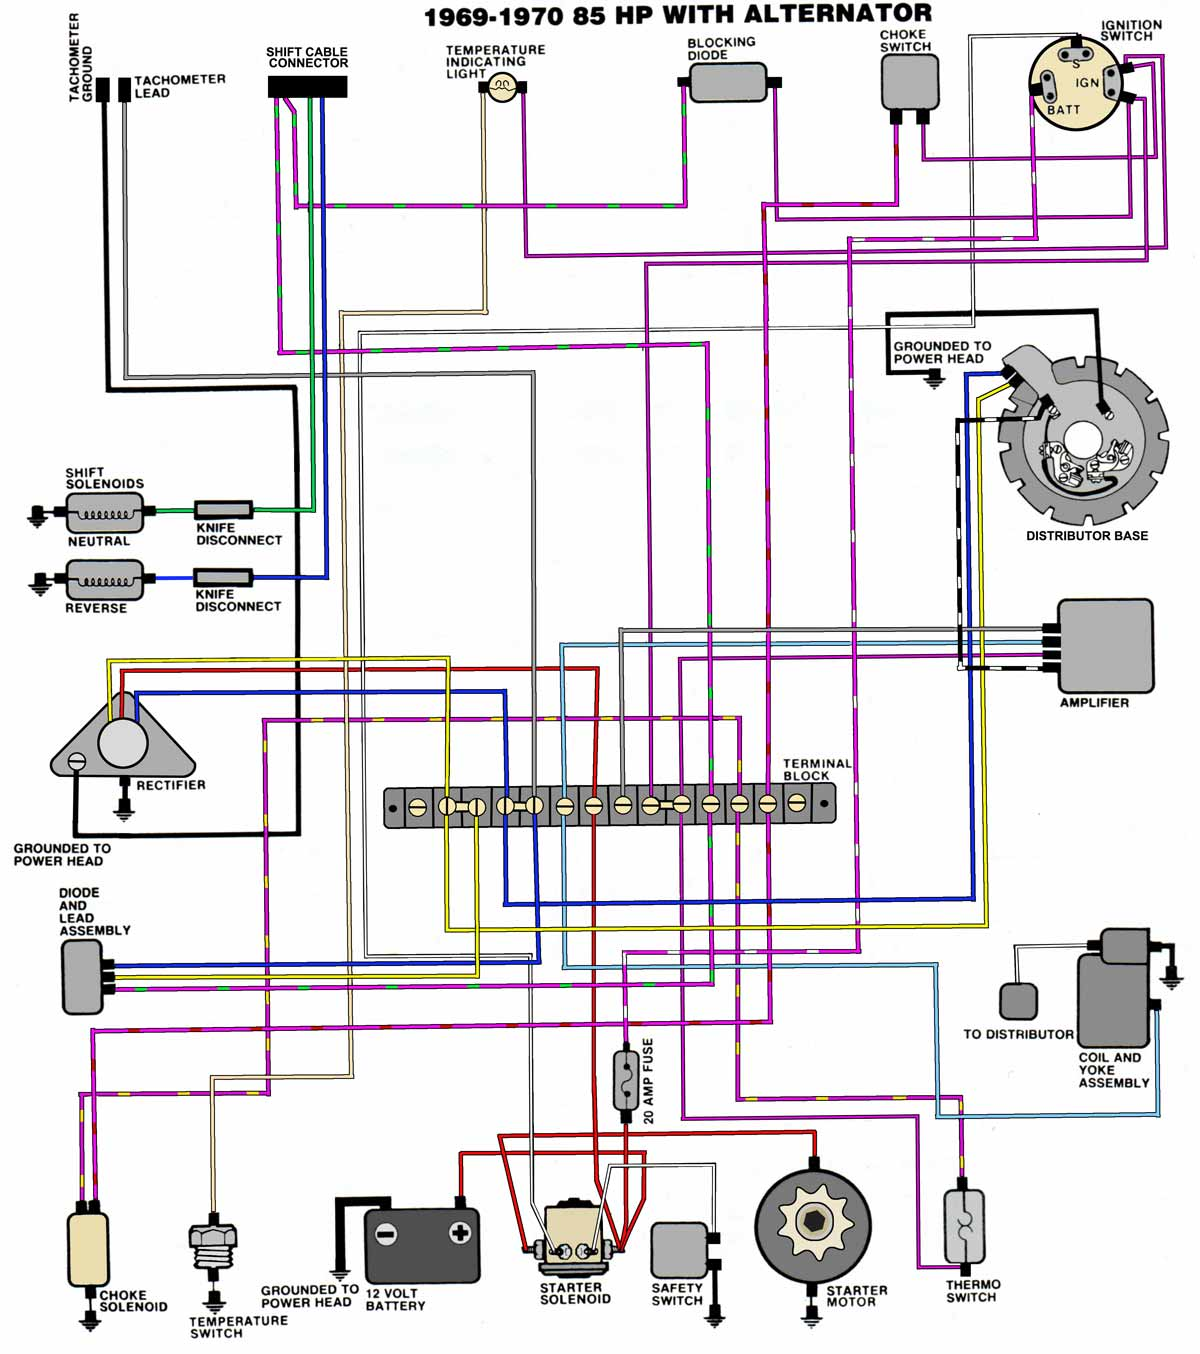 69_70_V4 1969 85hp ignition wiring help page 1 iboats boating forums omc wiring harness diagram at bakdesigns.co